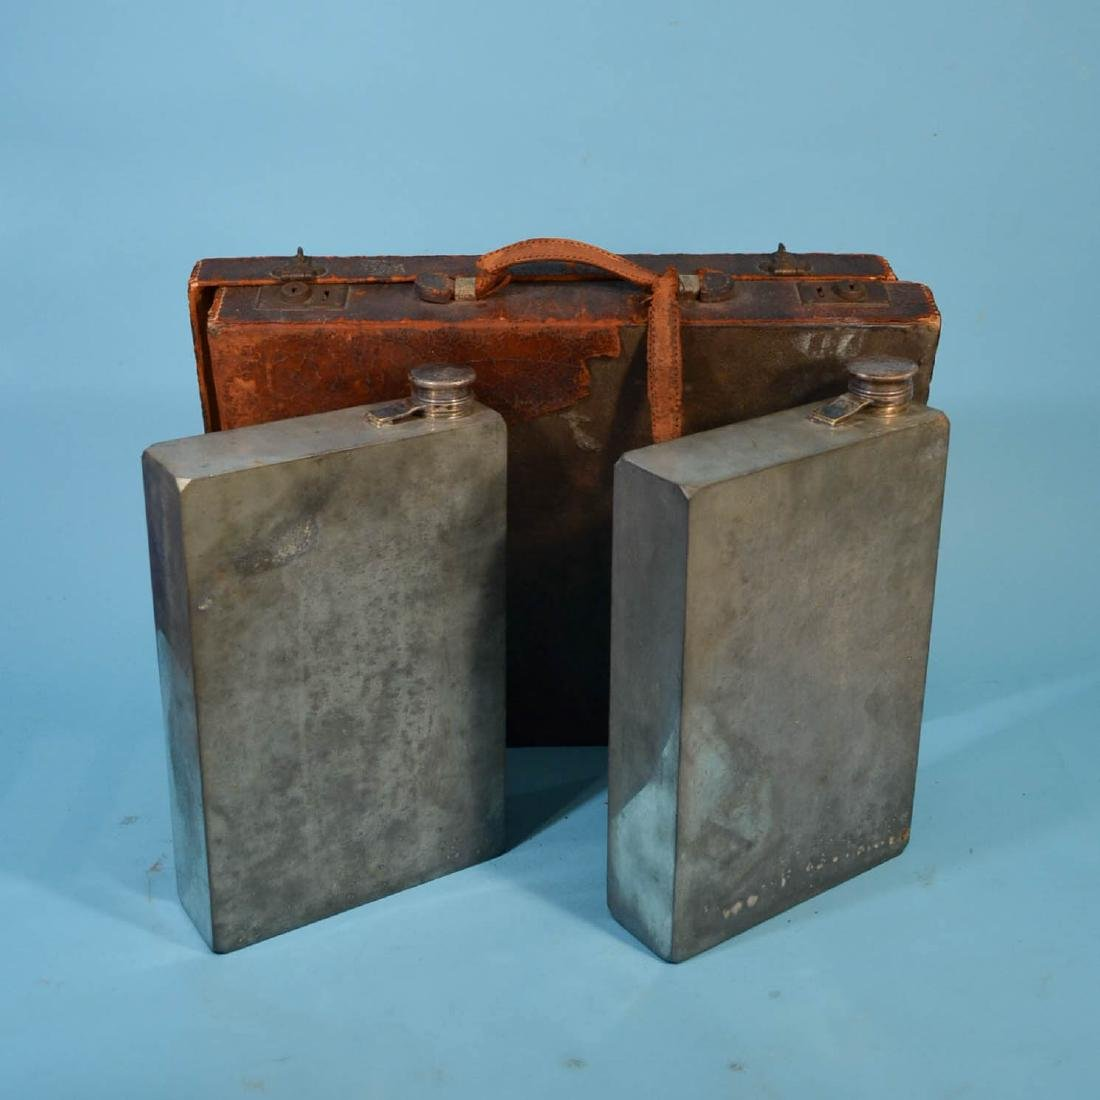 Meriden Abercrombie Prohibition Flasks in Briefcase